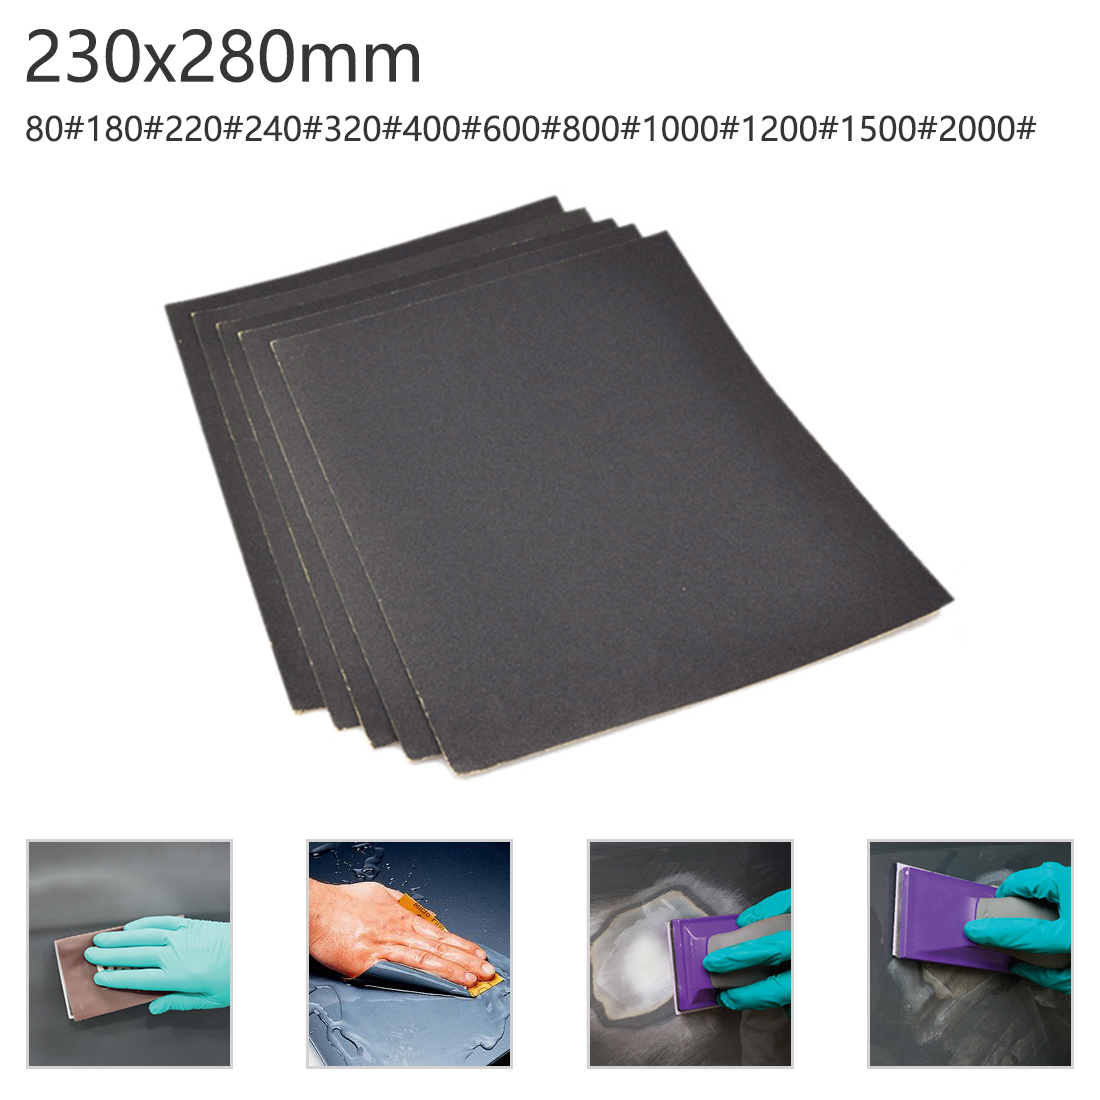 Waterproof Sandpaper Water Sand Paper Polishing Cloth Grit 80-2000 Mesh For Amber/ Bodhi/ Wood Dry Sand